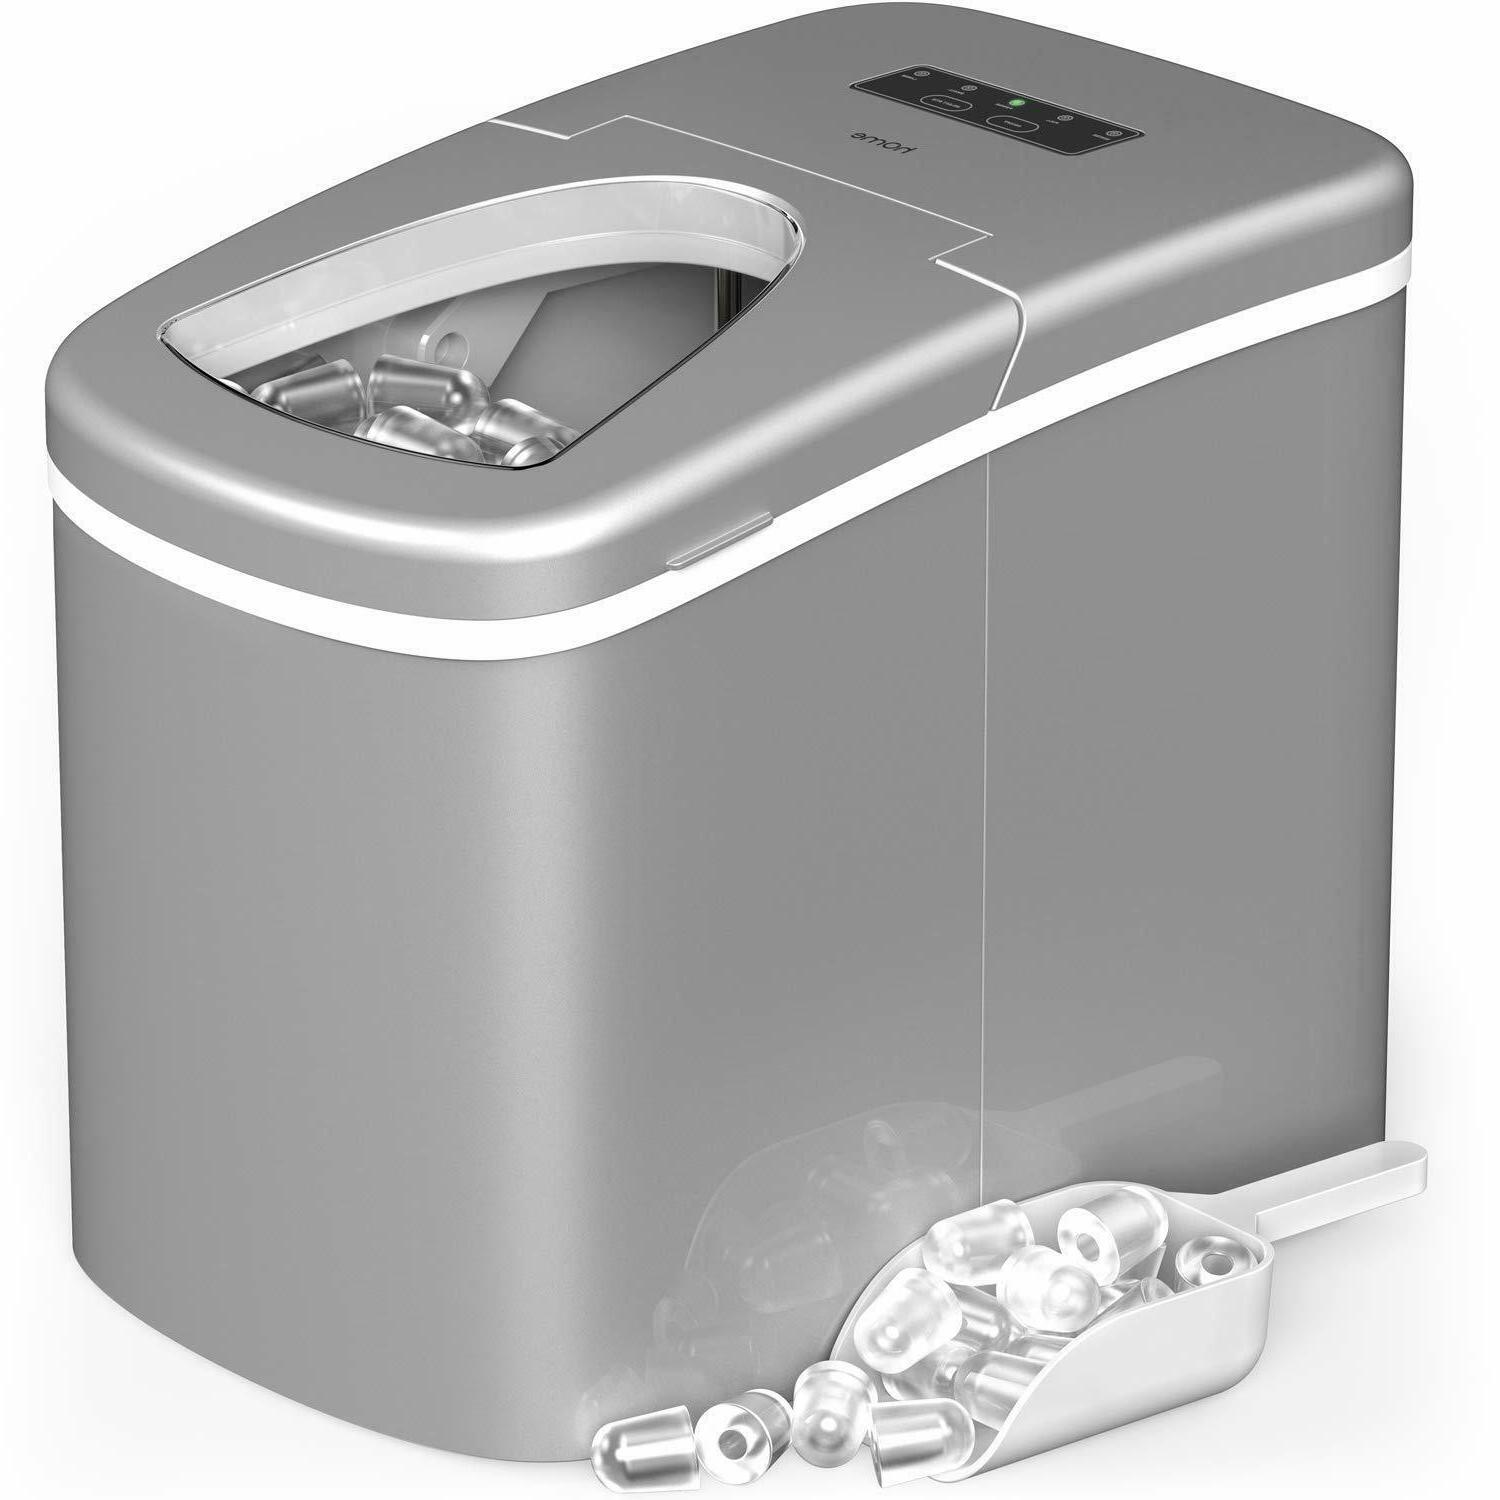 countertop portable ice maker makes 26 lbs